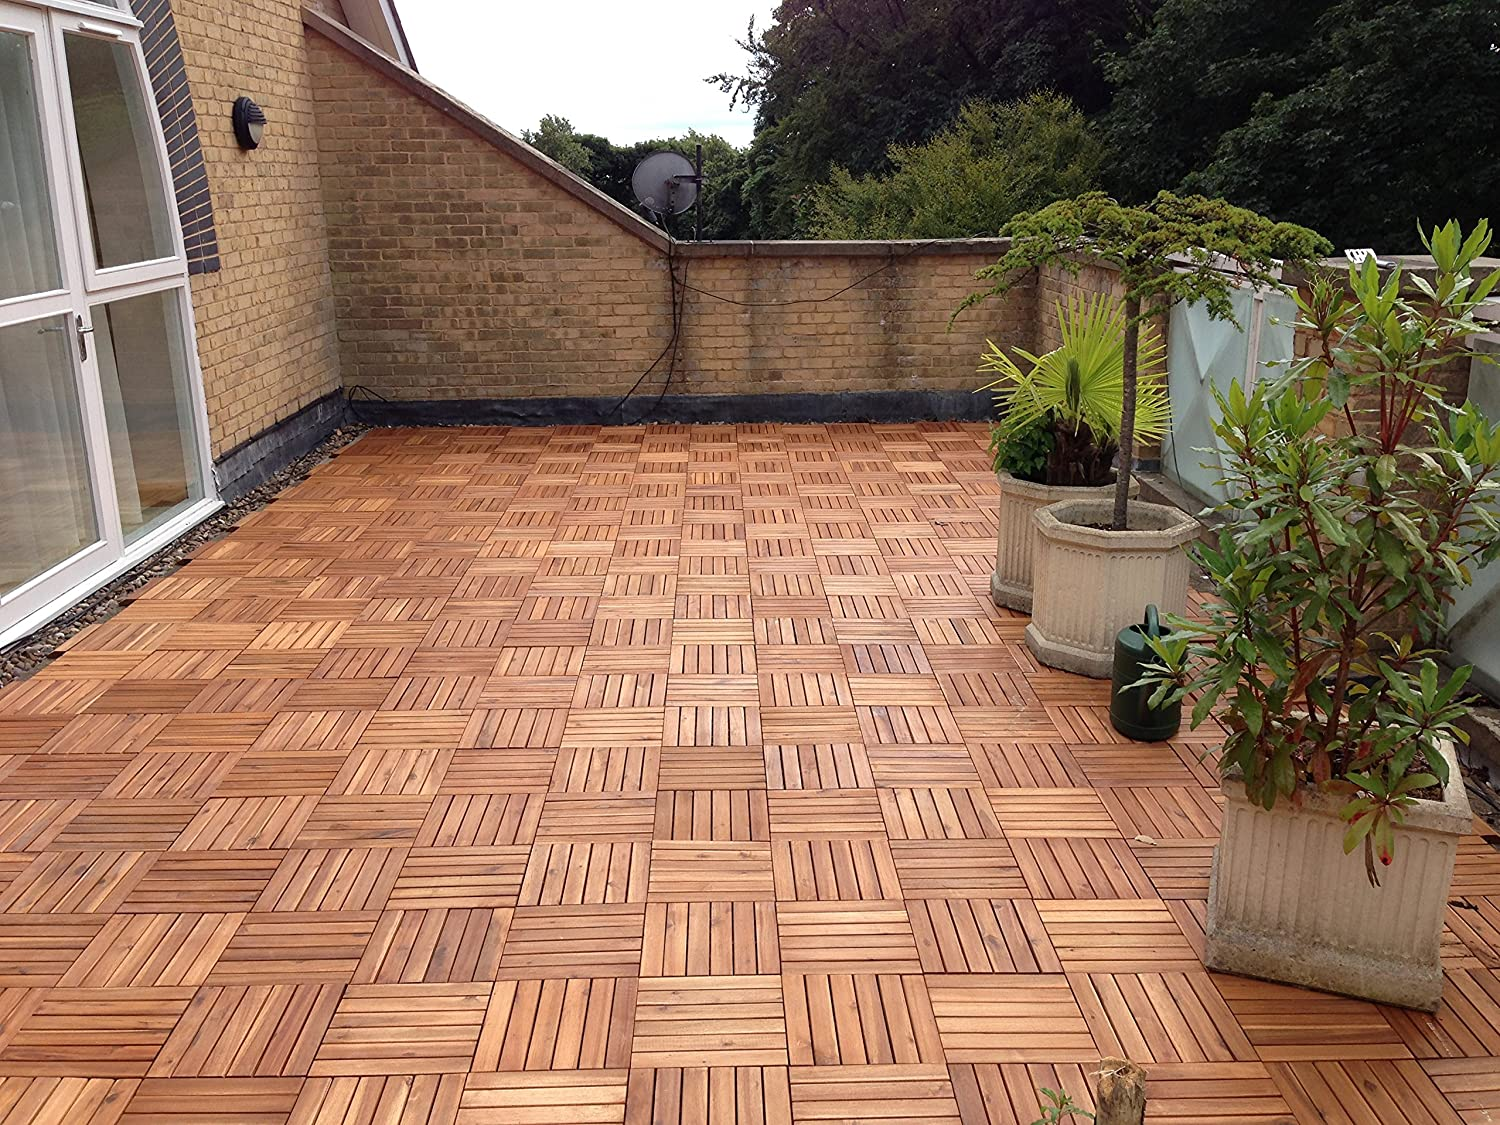 Wood patio tiles source solid wood acacia decking tiles on for Terrace tiles